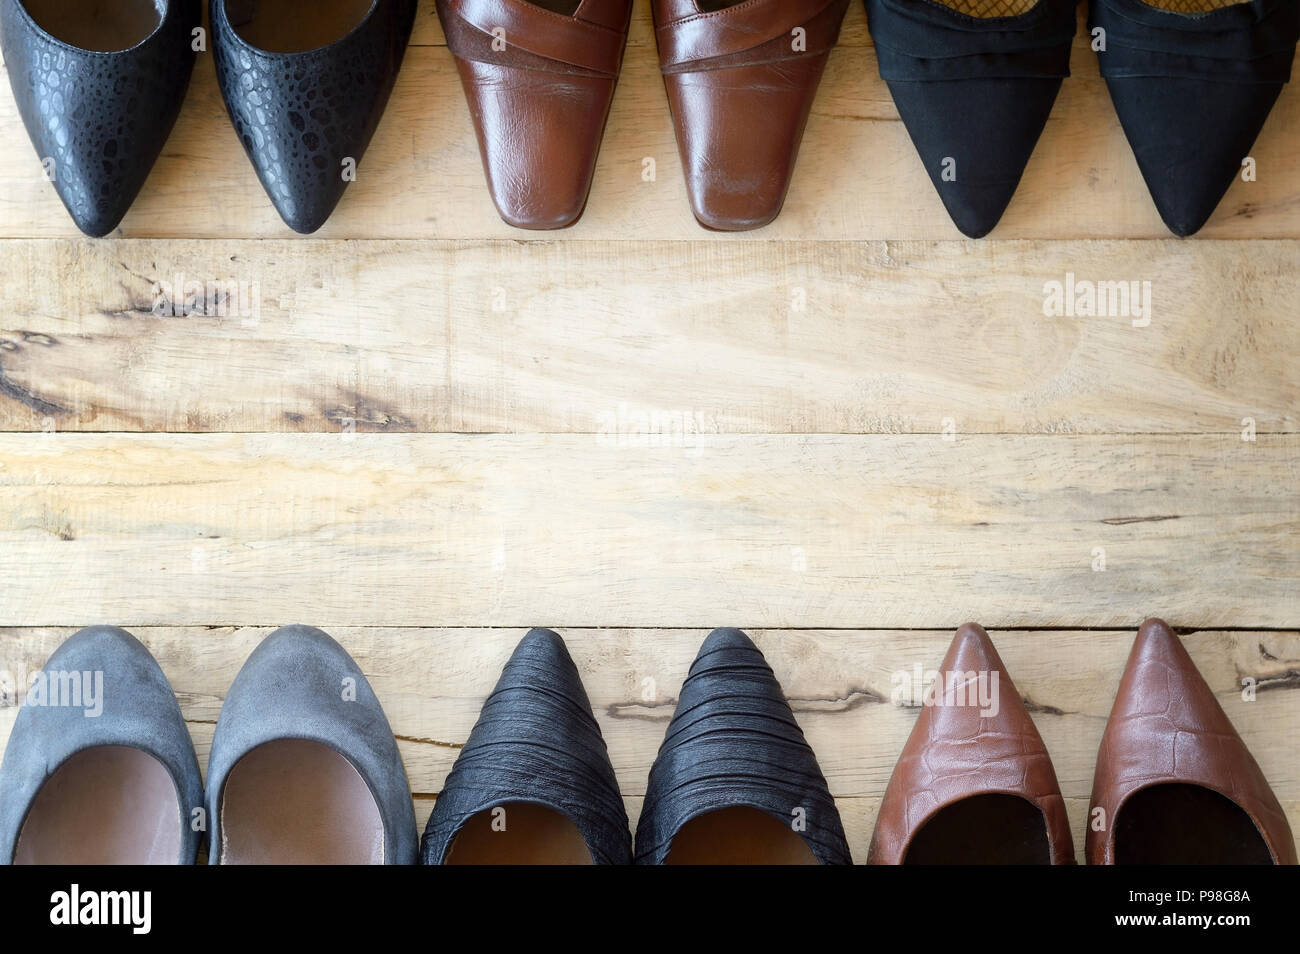 top view of different woman shoe on wooden background, several types of high heels - Stock Image